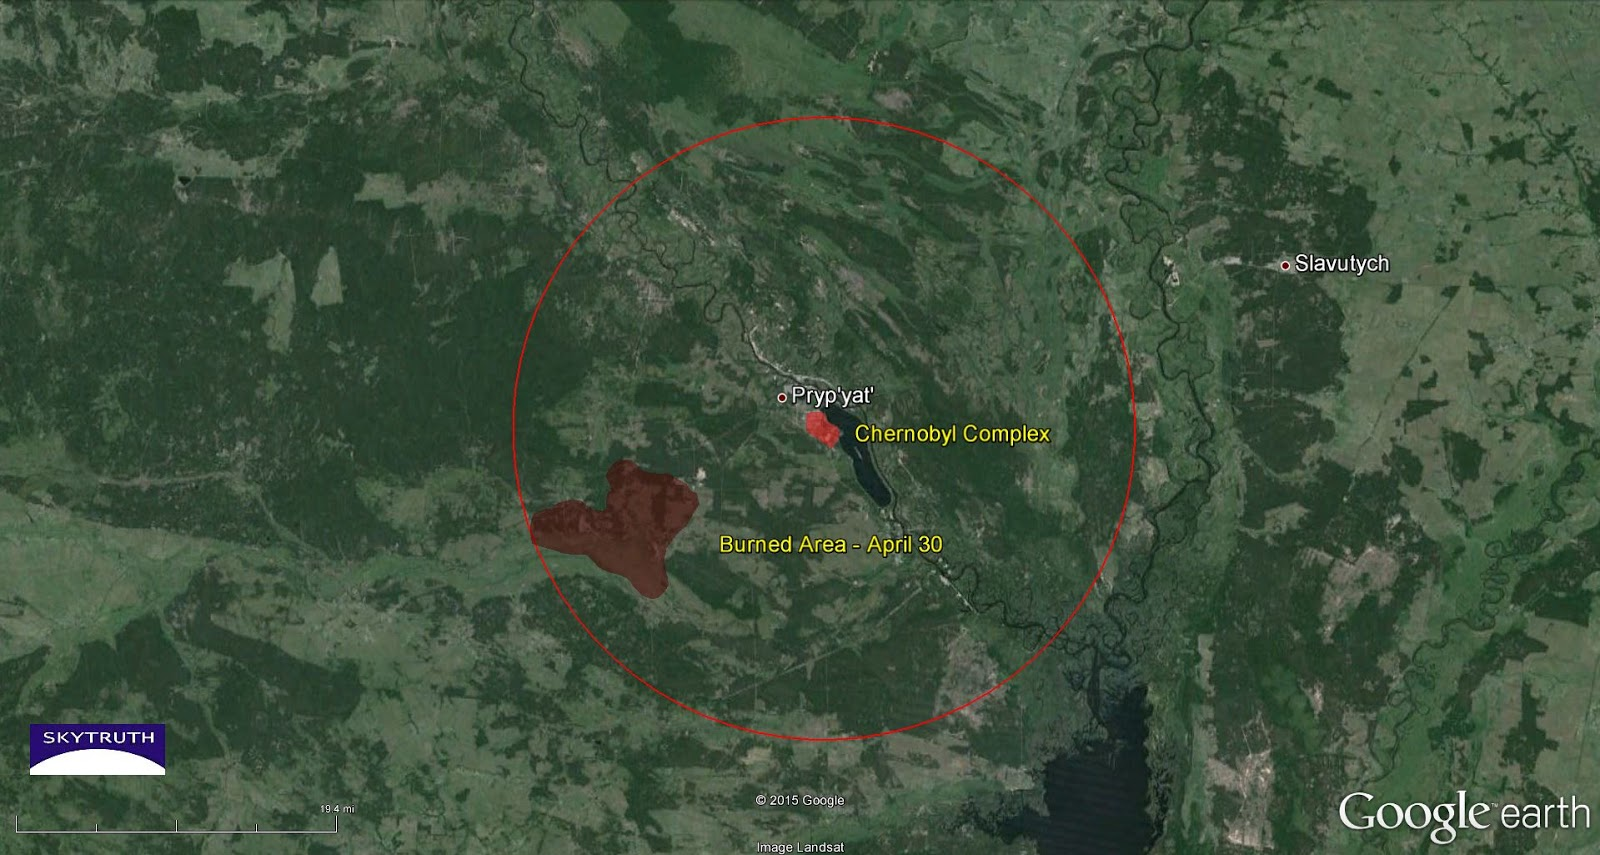 SkyTruth-Chernobyl-wildfire-overview-exclusion-zone